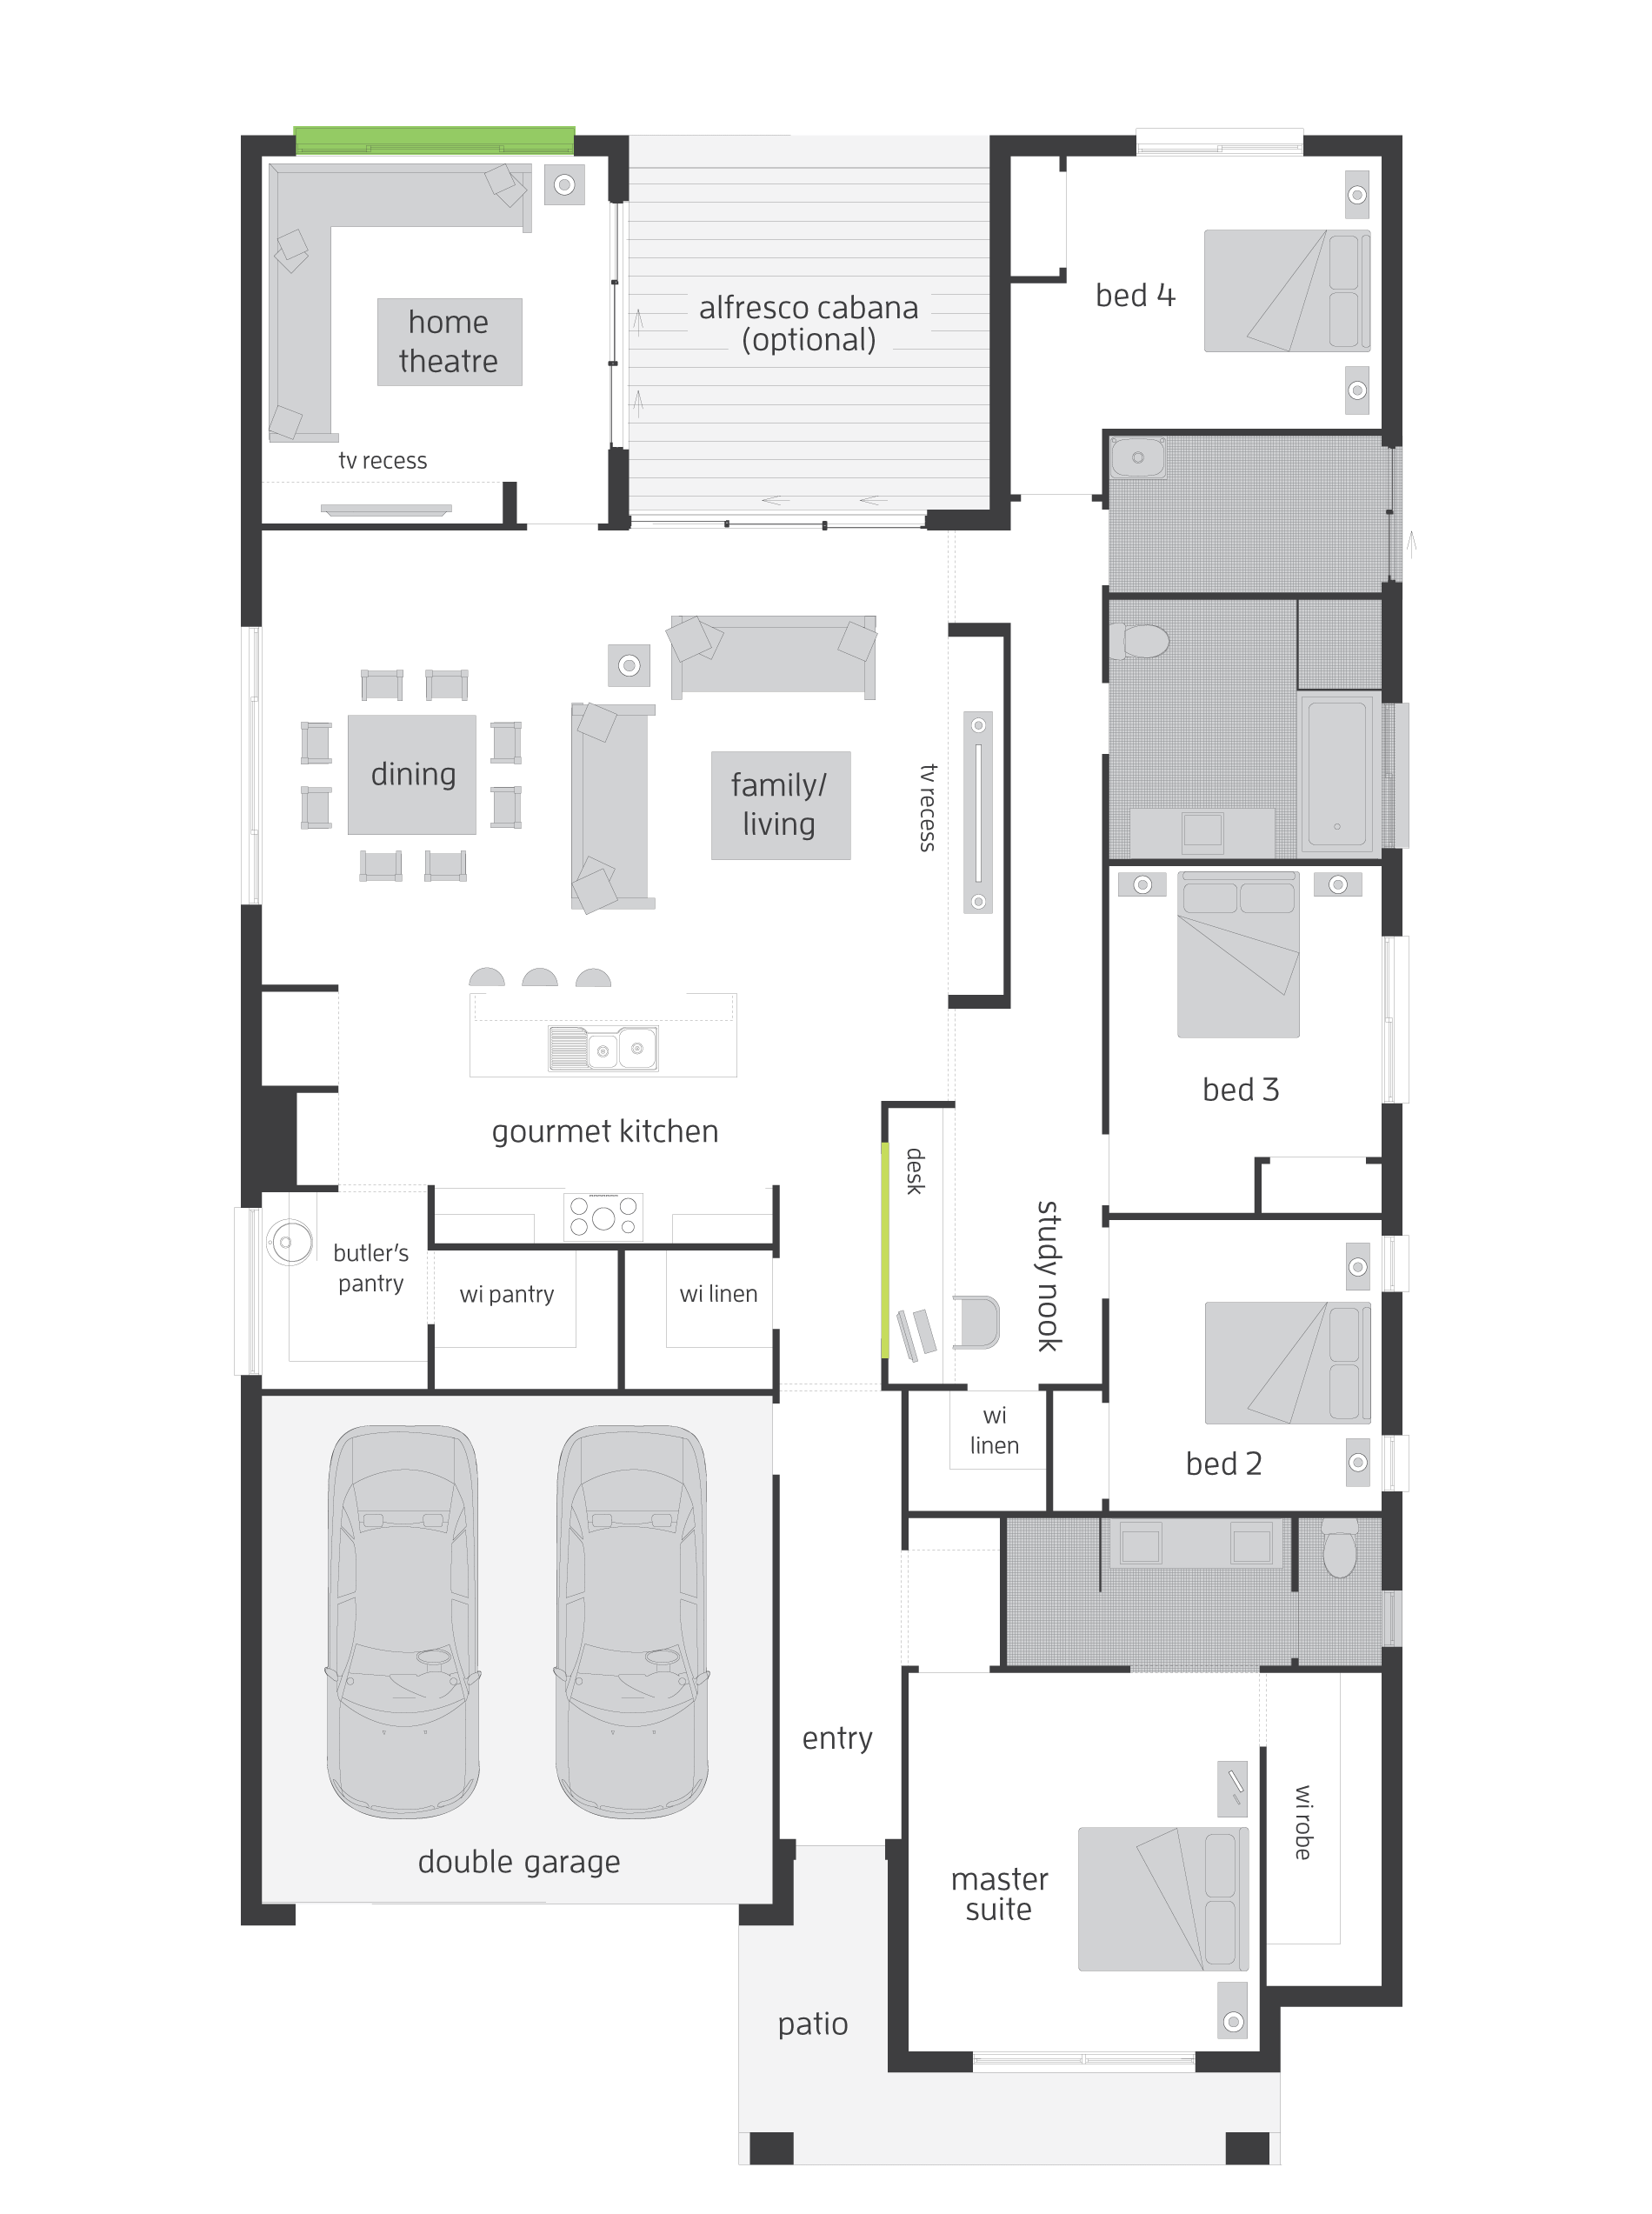 4 bedroom townhouse floor plans